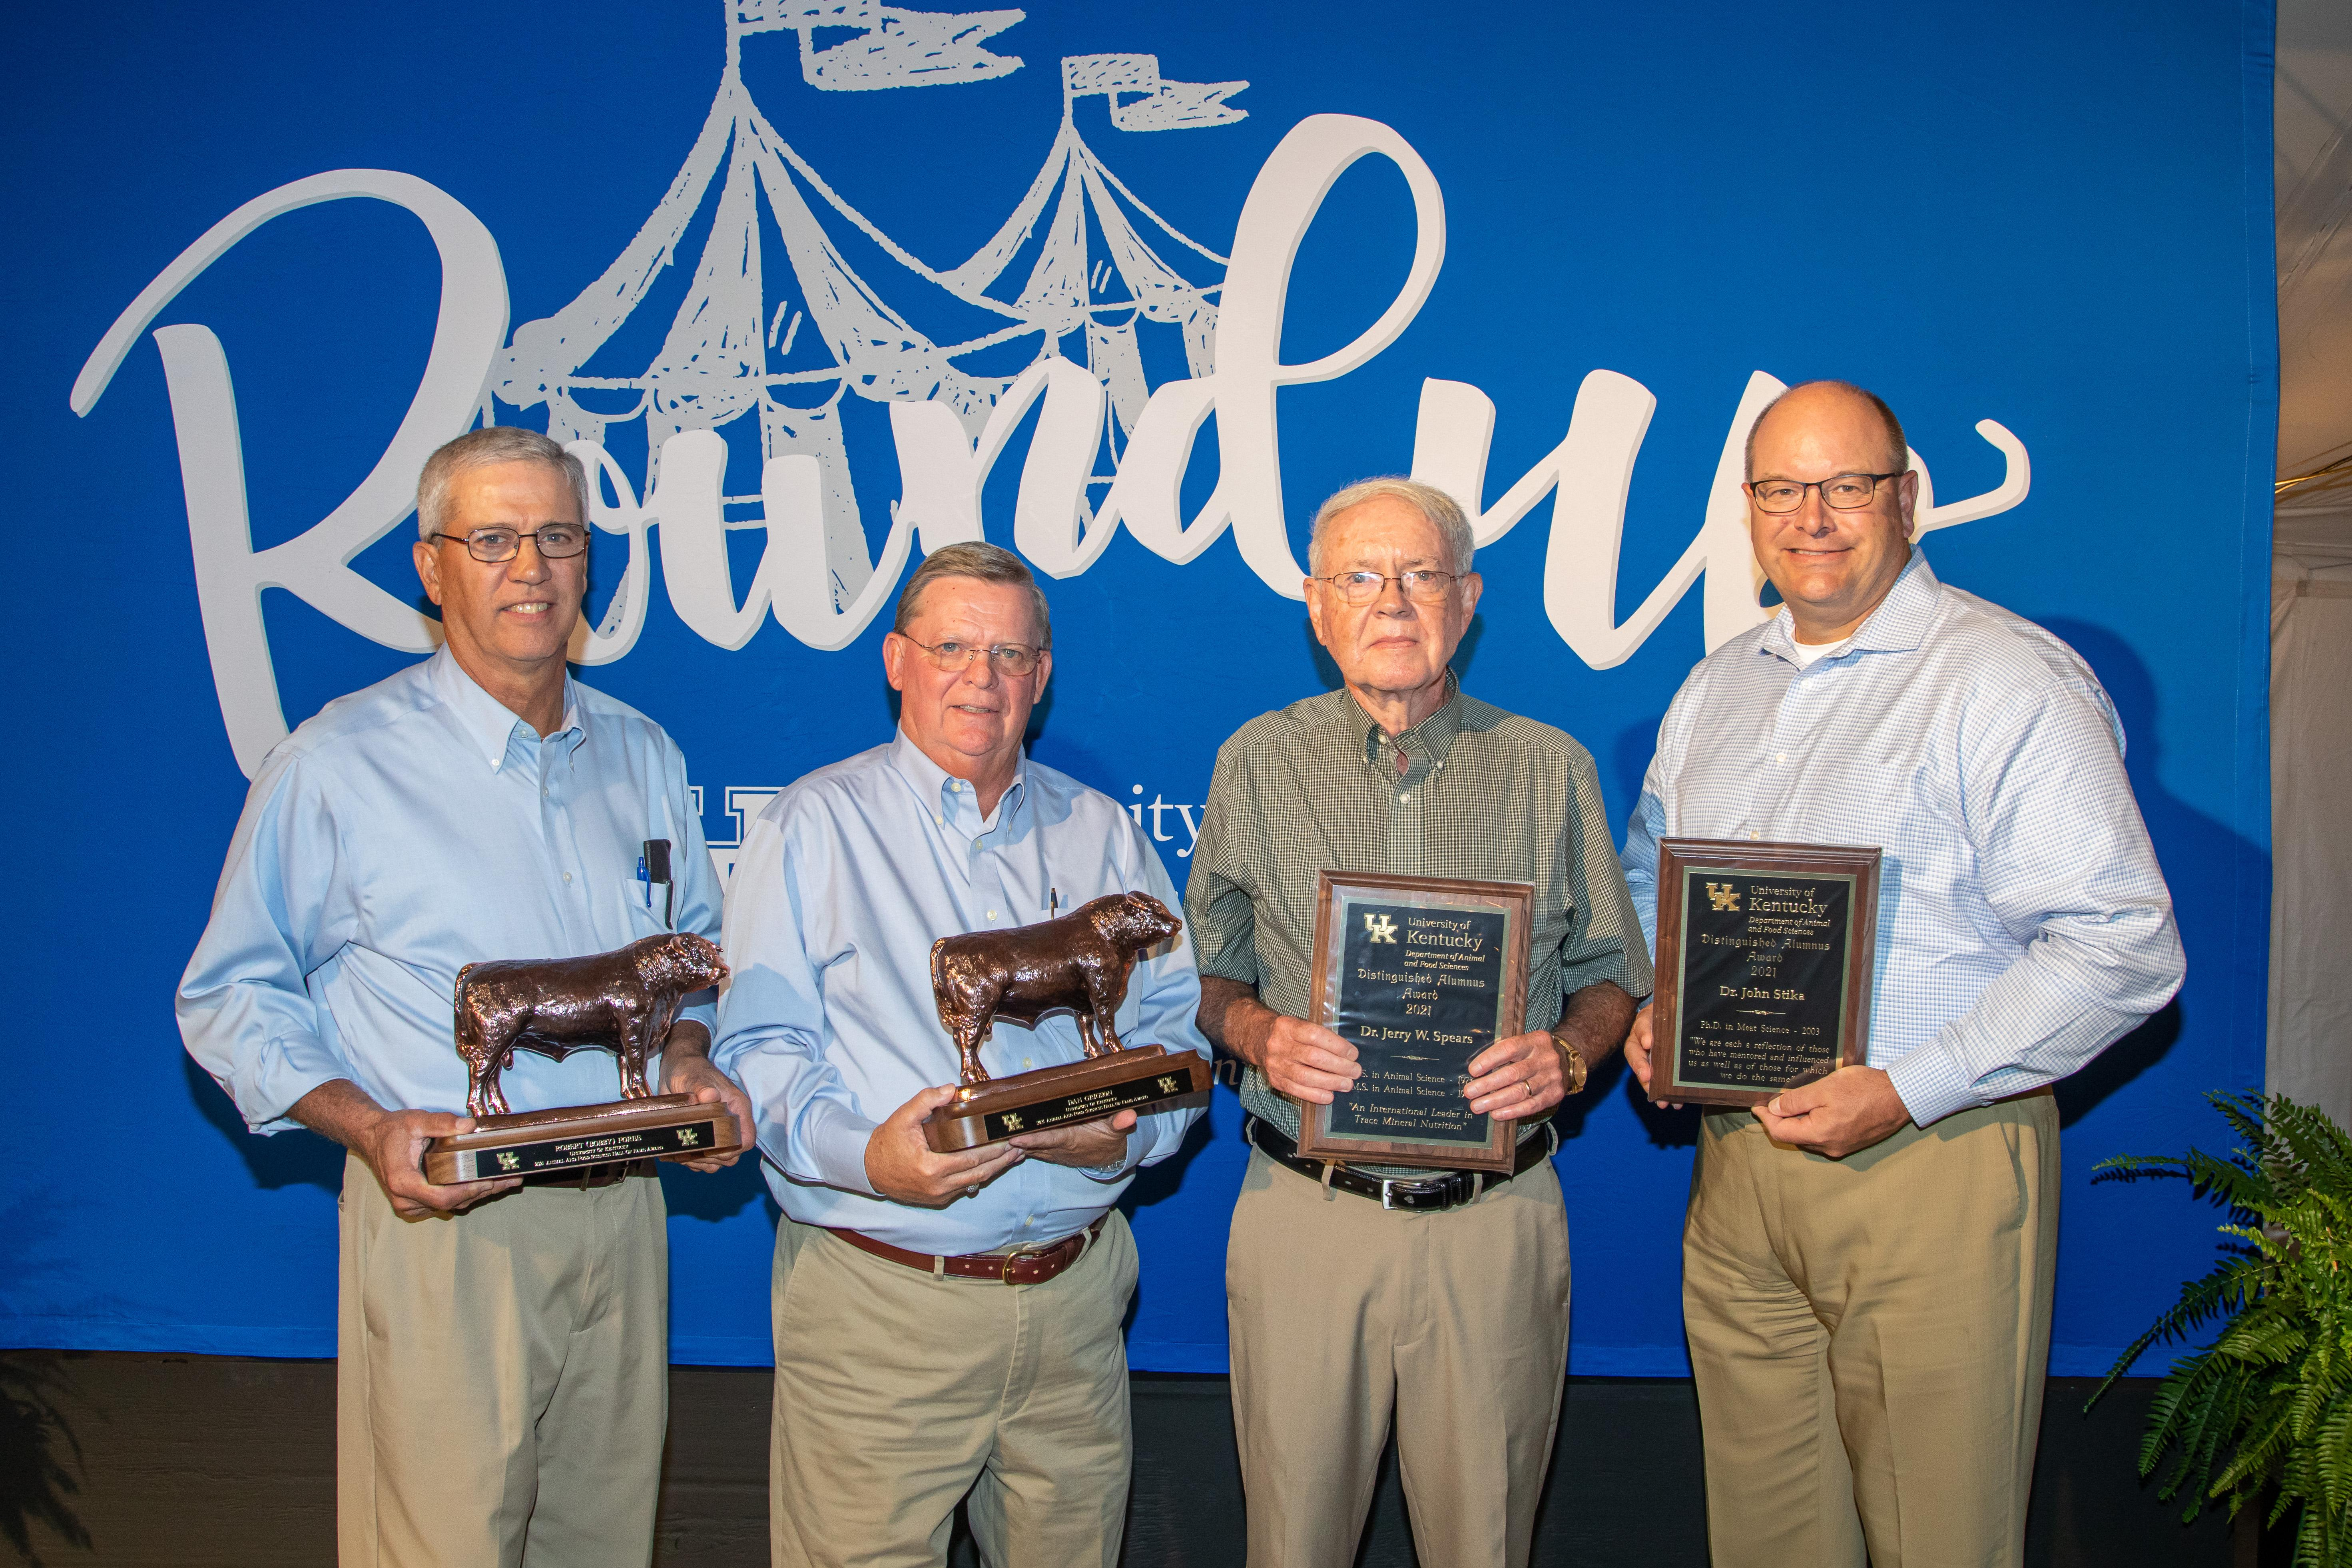 (L to R) Hall of Fame Inductees Robert (Bobby) Foree and Dan Grigson and Distinguished Alumnus Dr. Jerry Spears and Dr. John Stika were honored during the Animal Science Reunion Oct. 1 during 2021 Roundup week for the College of Agriculture, Food and E